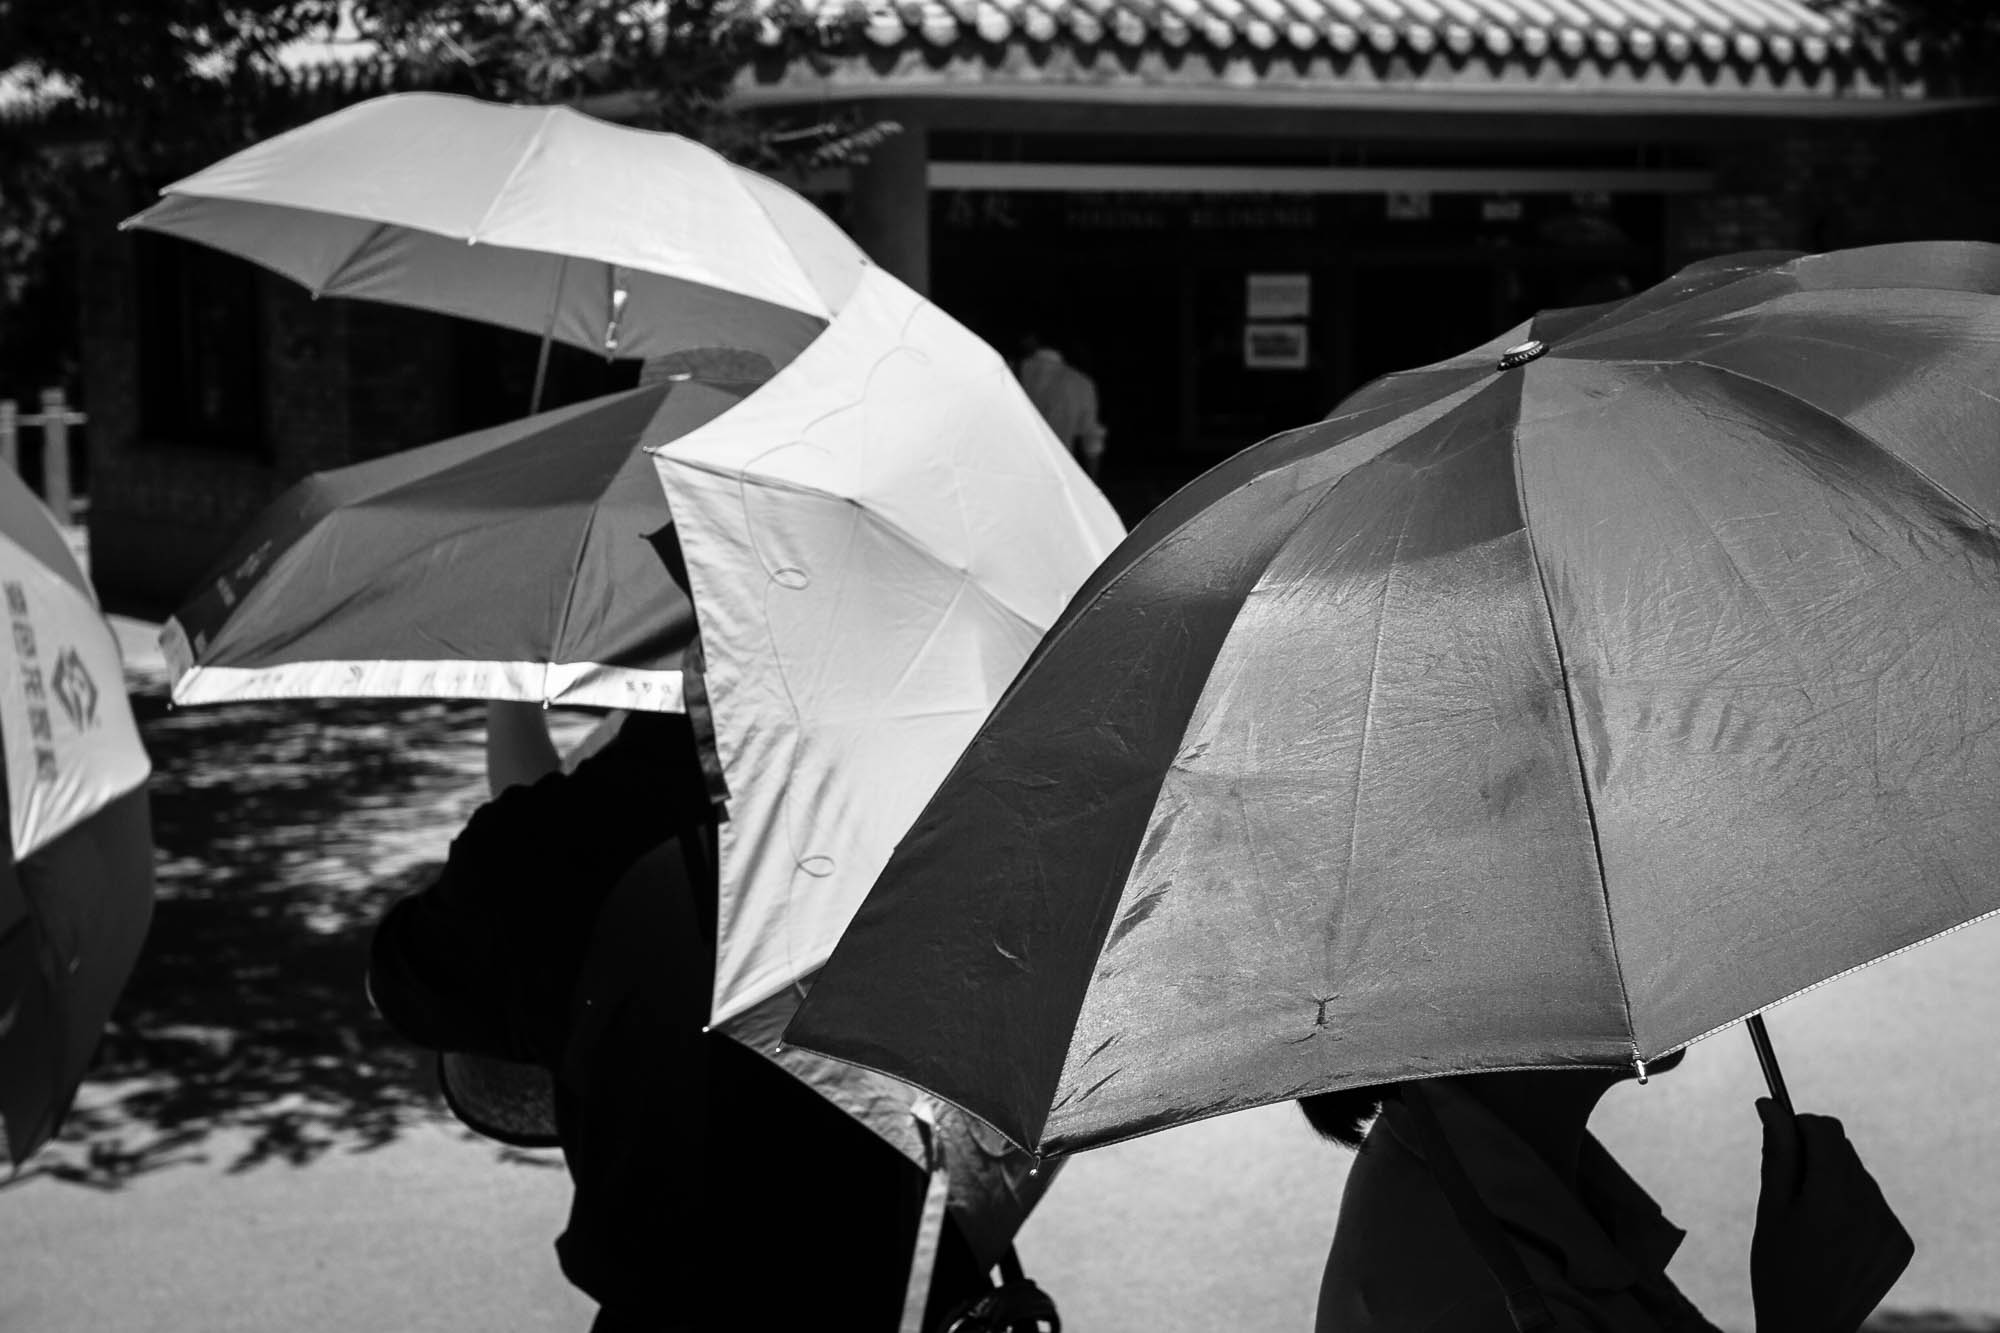 umbrellas in 2006